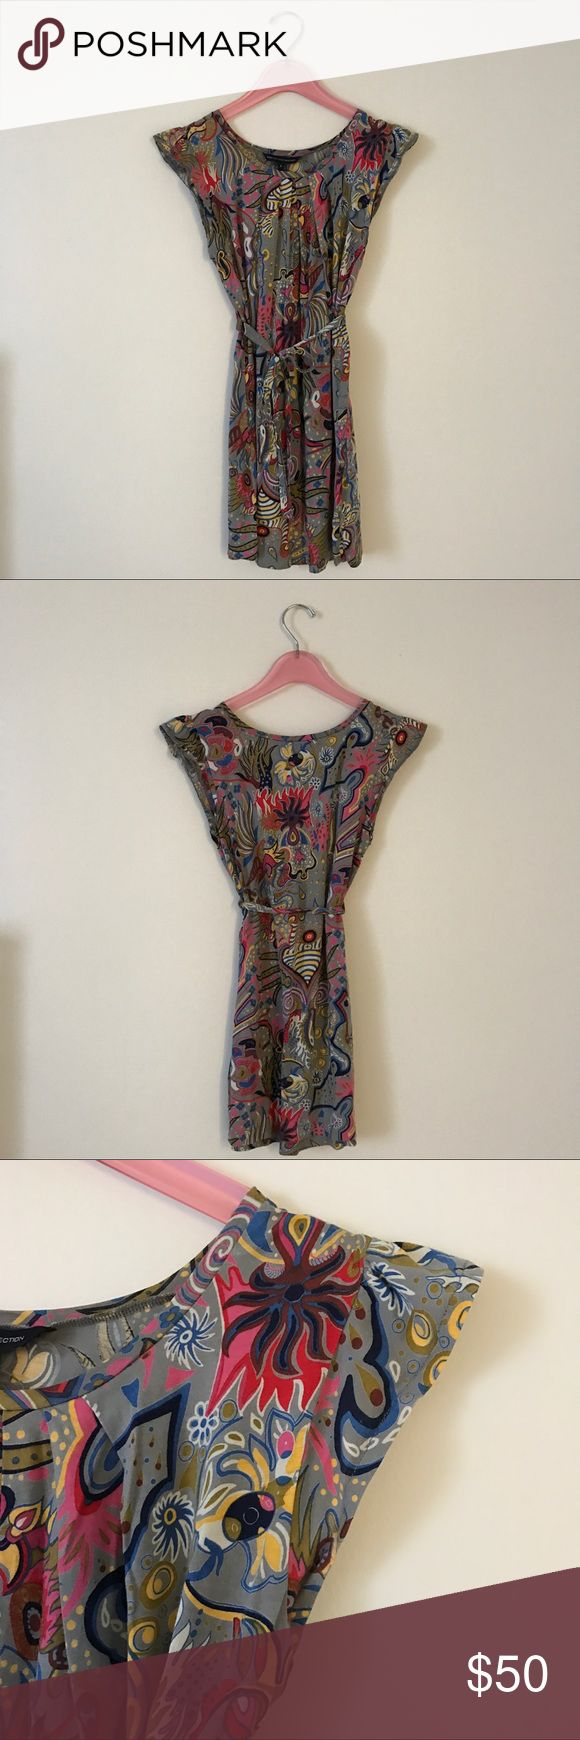 """* French Connection * Super cute sleeveless, cotton dress/tunic. Multi-colored and multi-pattern. Removable belt/tie. Pleated at neckline, nice detail. Size 4. I wore this as a dress and I'm 5'-5"""". Can be worn with leggings. Been worn a bunch of times but no signs of wear or tear. In very good condition. No odors. Non smoker. No trades please. Thank you. Happy shopping! French Connection Dresses"""